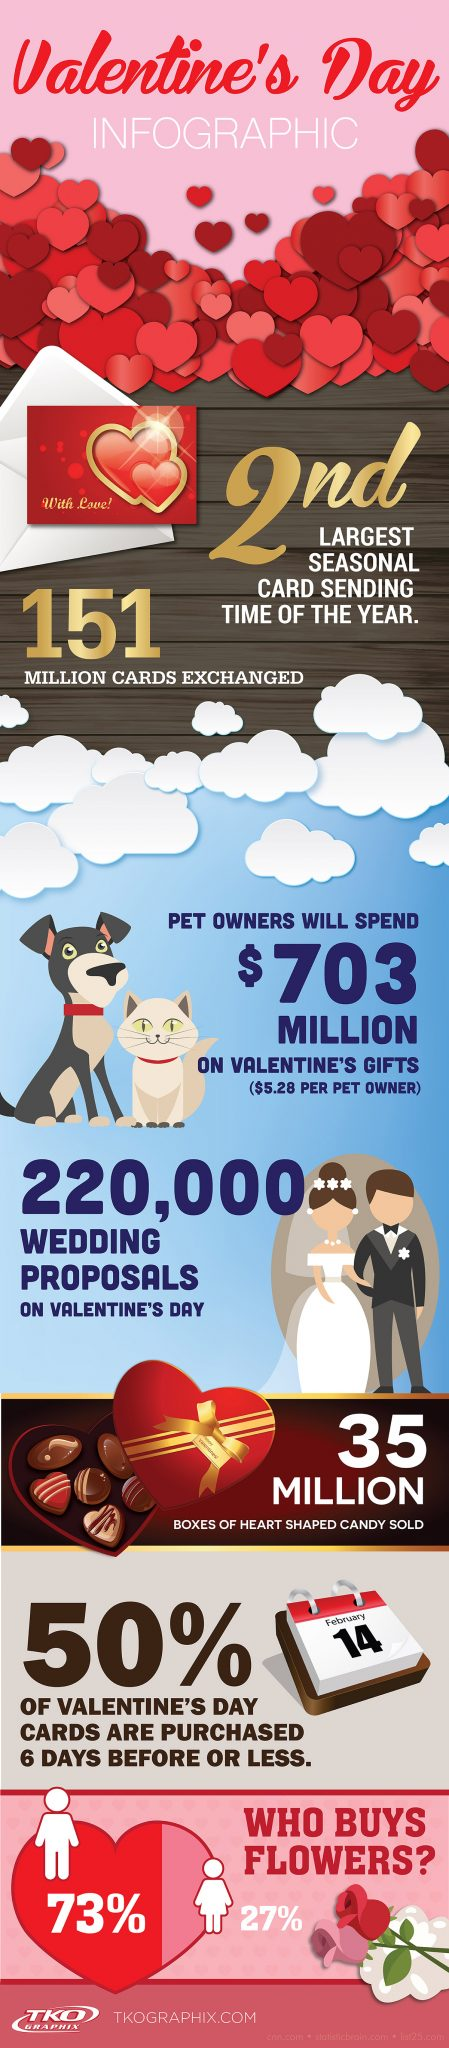 valentines-day-infographic-by-TKO-Graphix